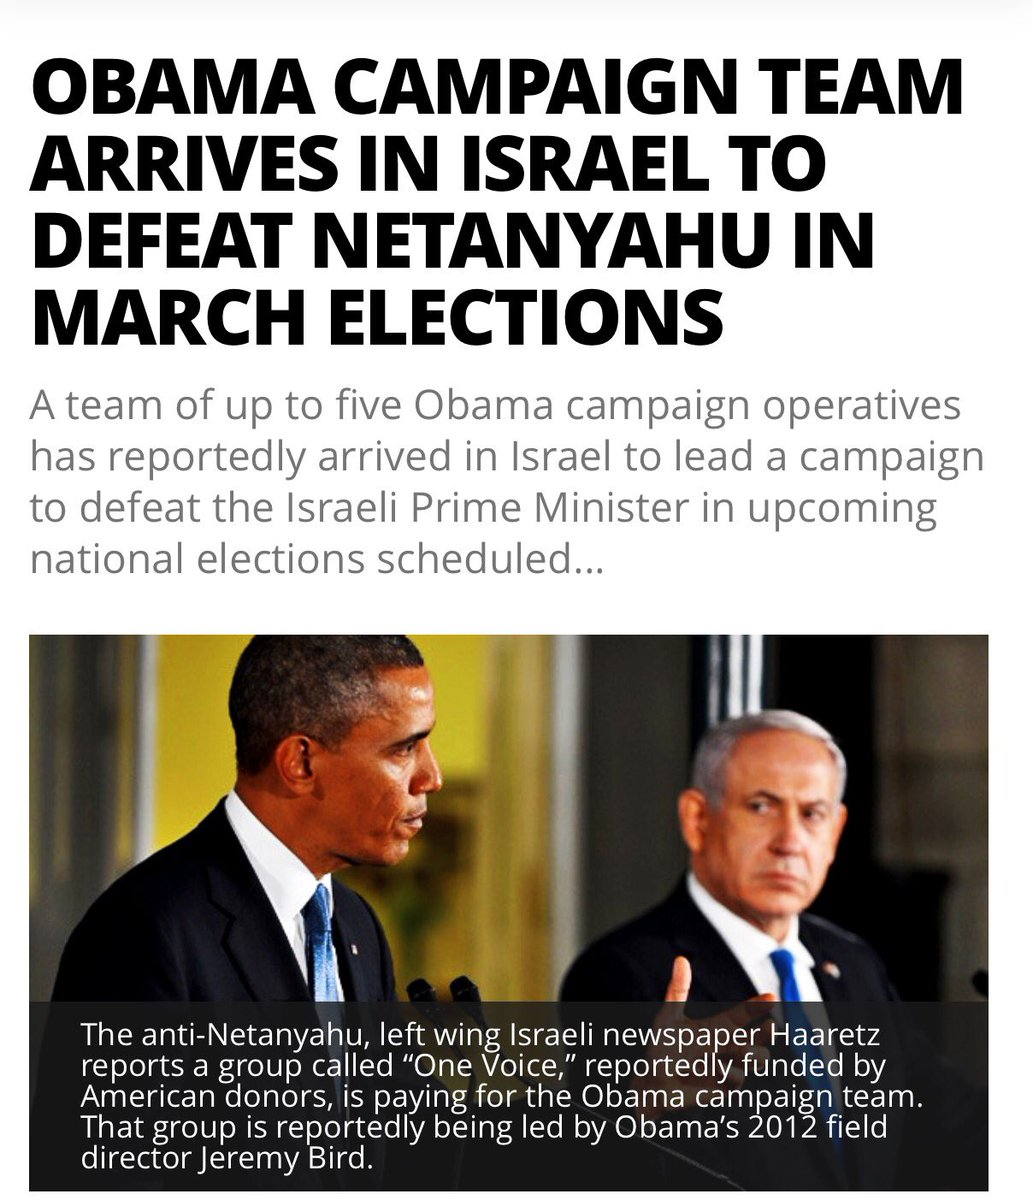 Where w the outraged against #Obama administration 4meddling w @netanyahu election @Israel ? Oh Forgot liberals &amp; #MSM cover their @FBI<br>http://pic.twitter.com/PMDmfWdKXC